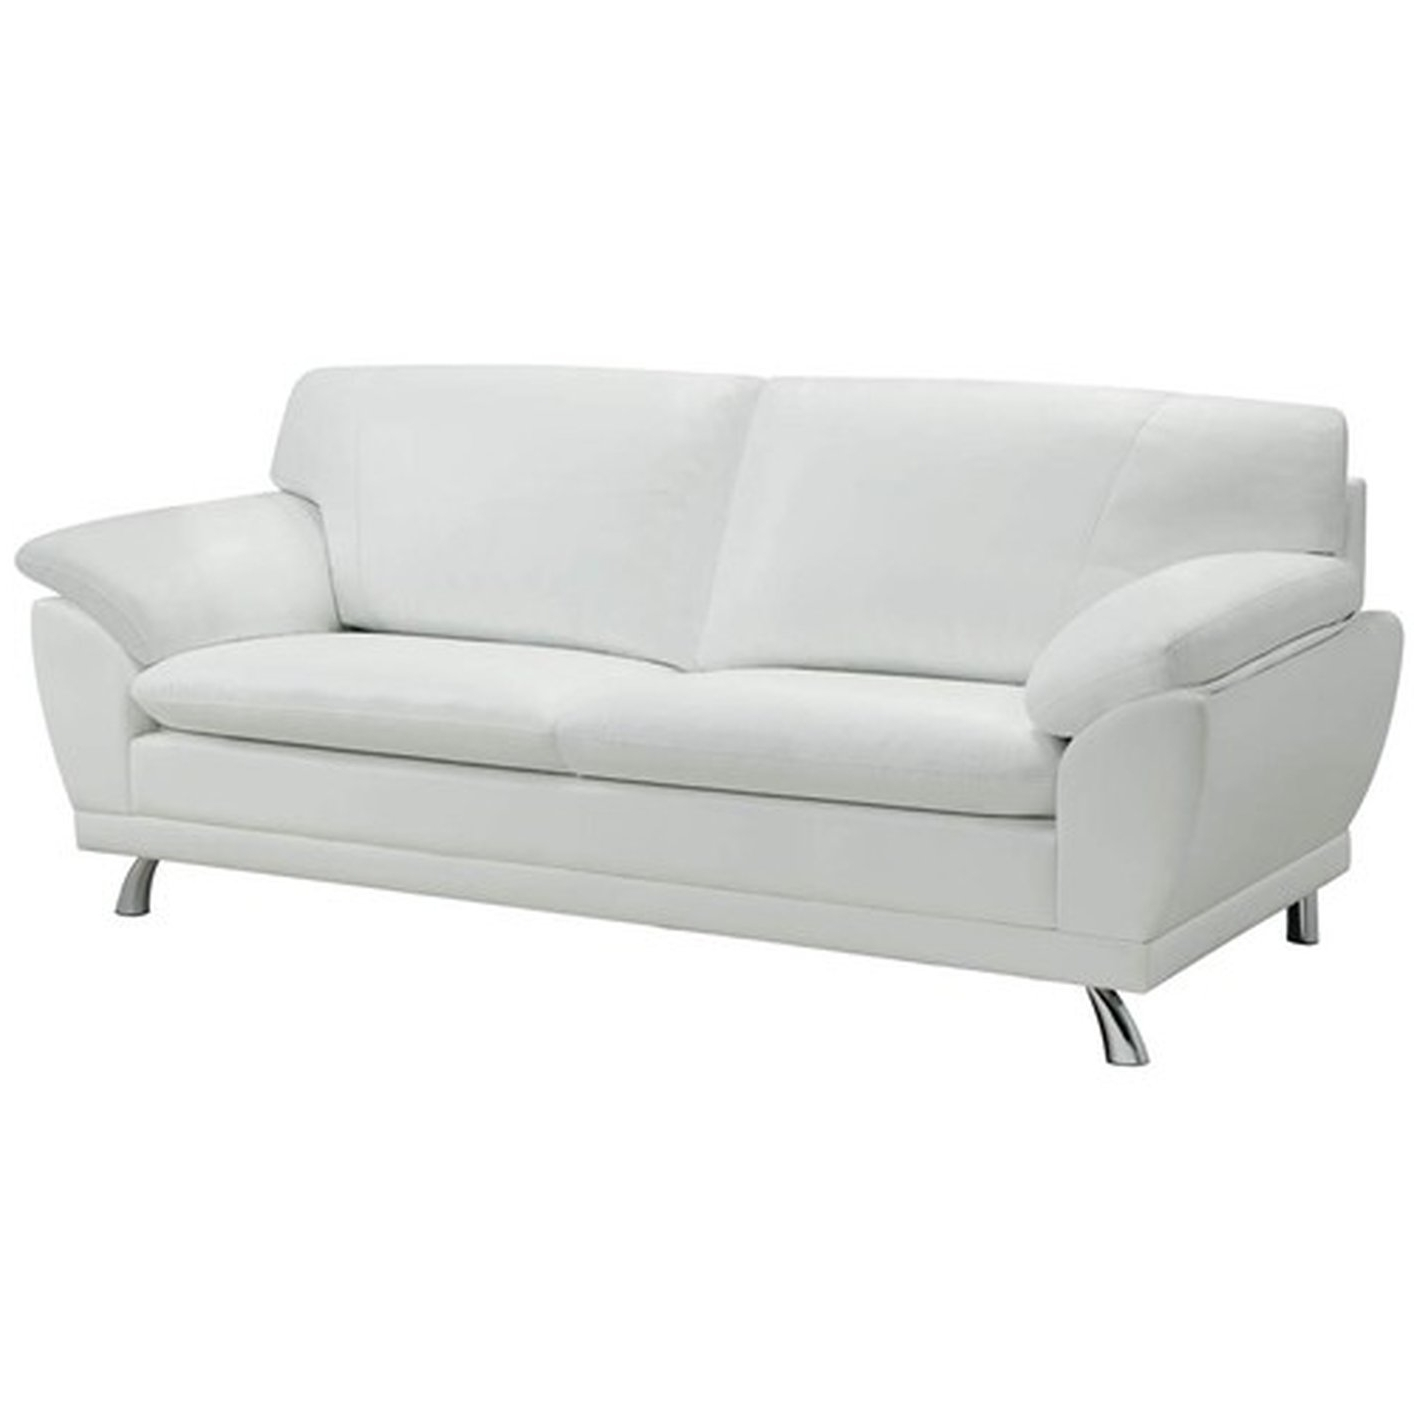 Amazing White Leather Couch 91 With Additional Sofas And Couches With Most Recent White Leather Sofas (View 2 of 20)